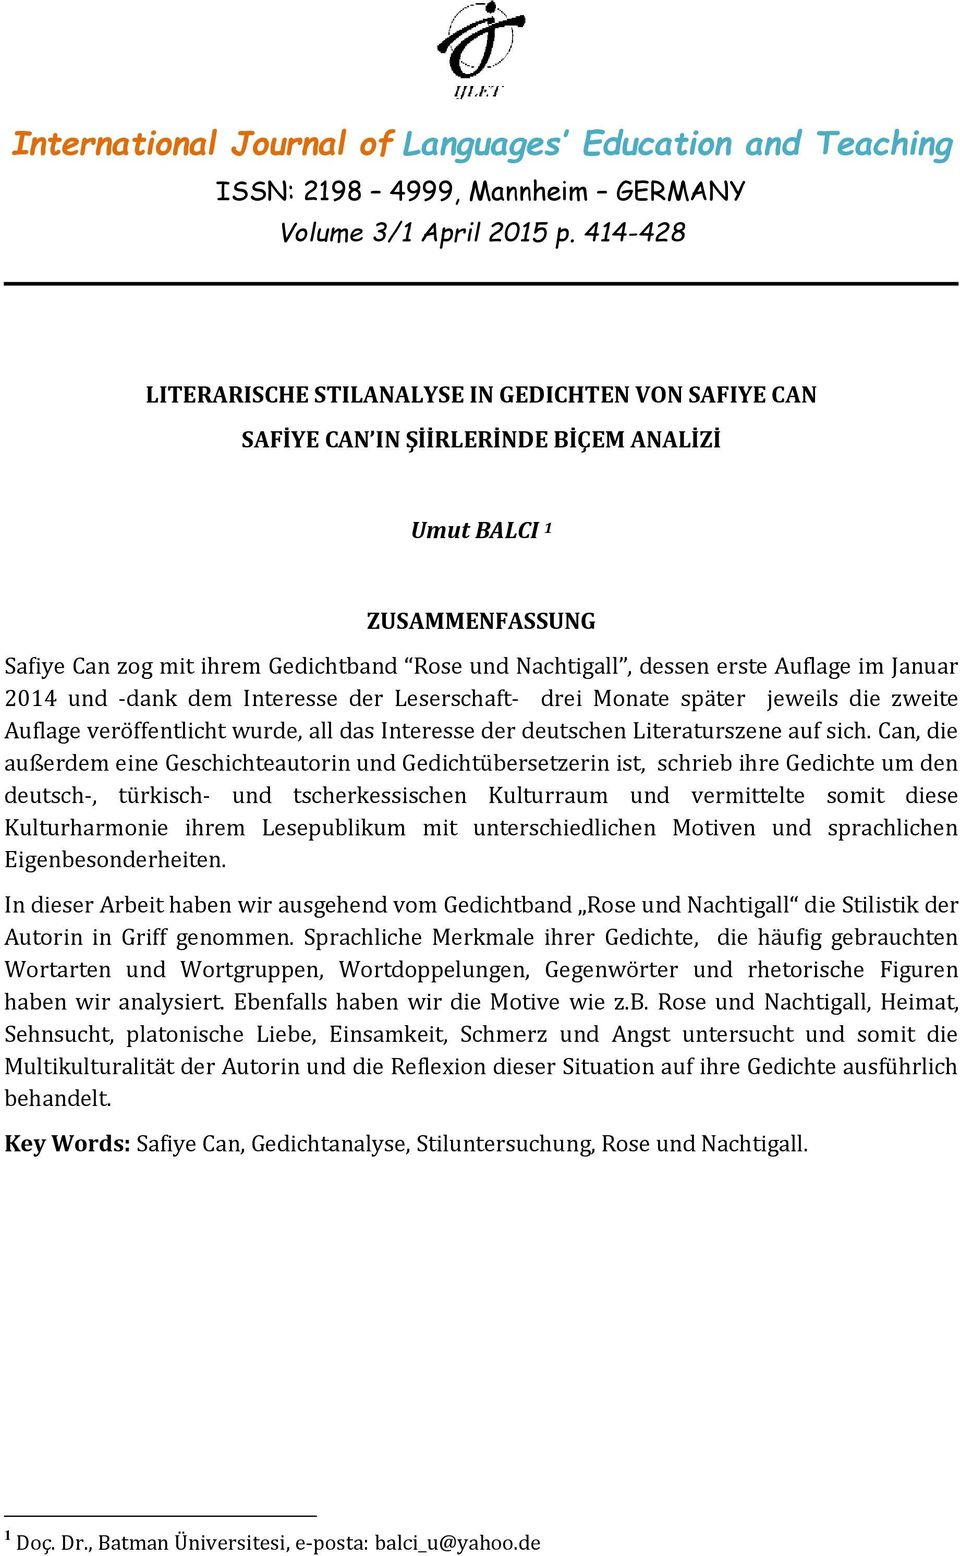 International Journal Of Languages Education And Teaching